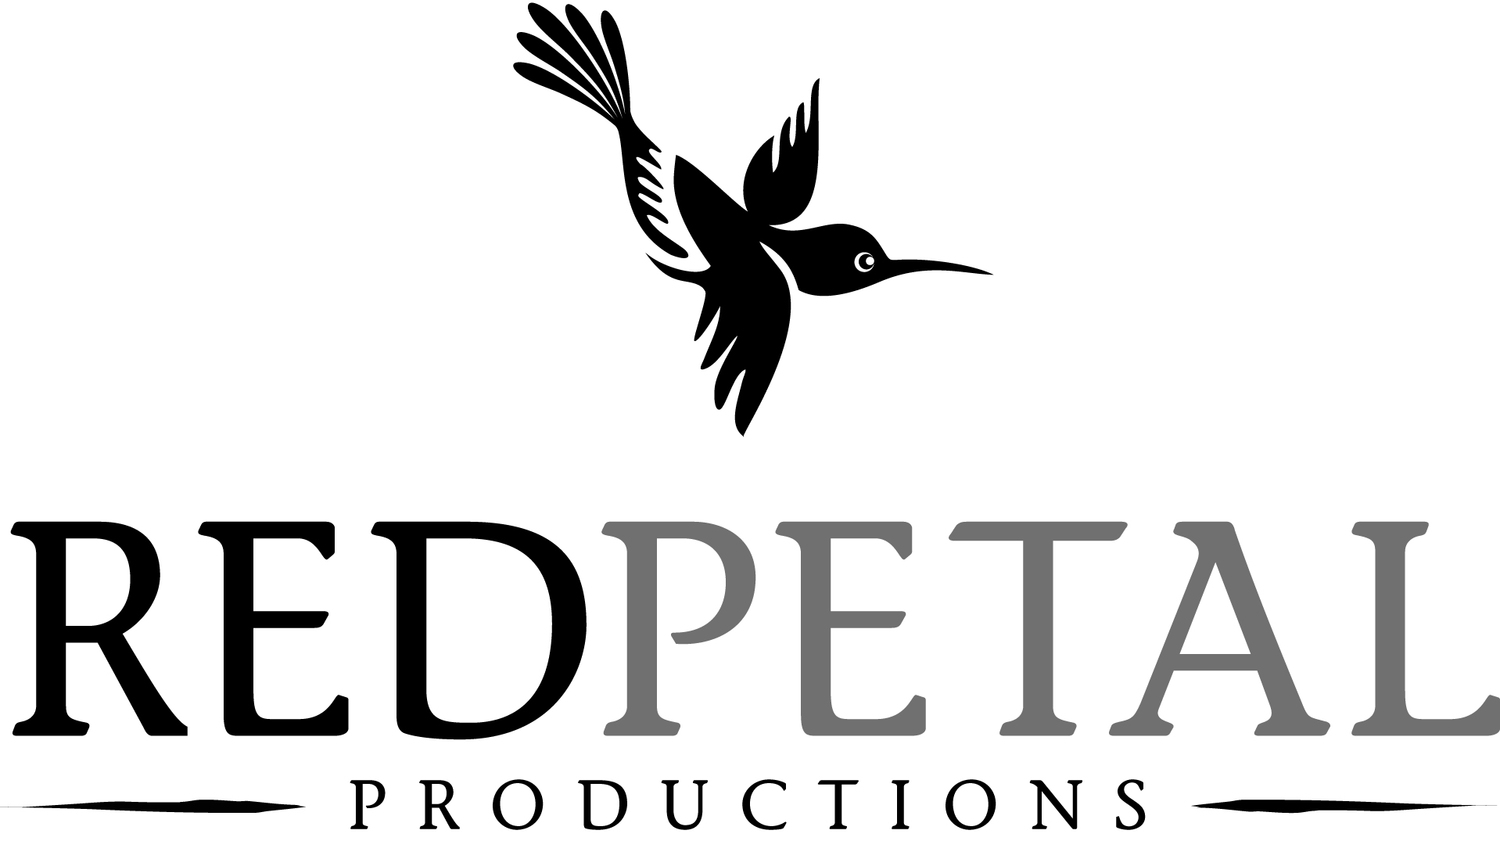 Red Petal Productions